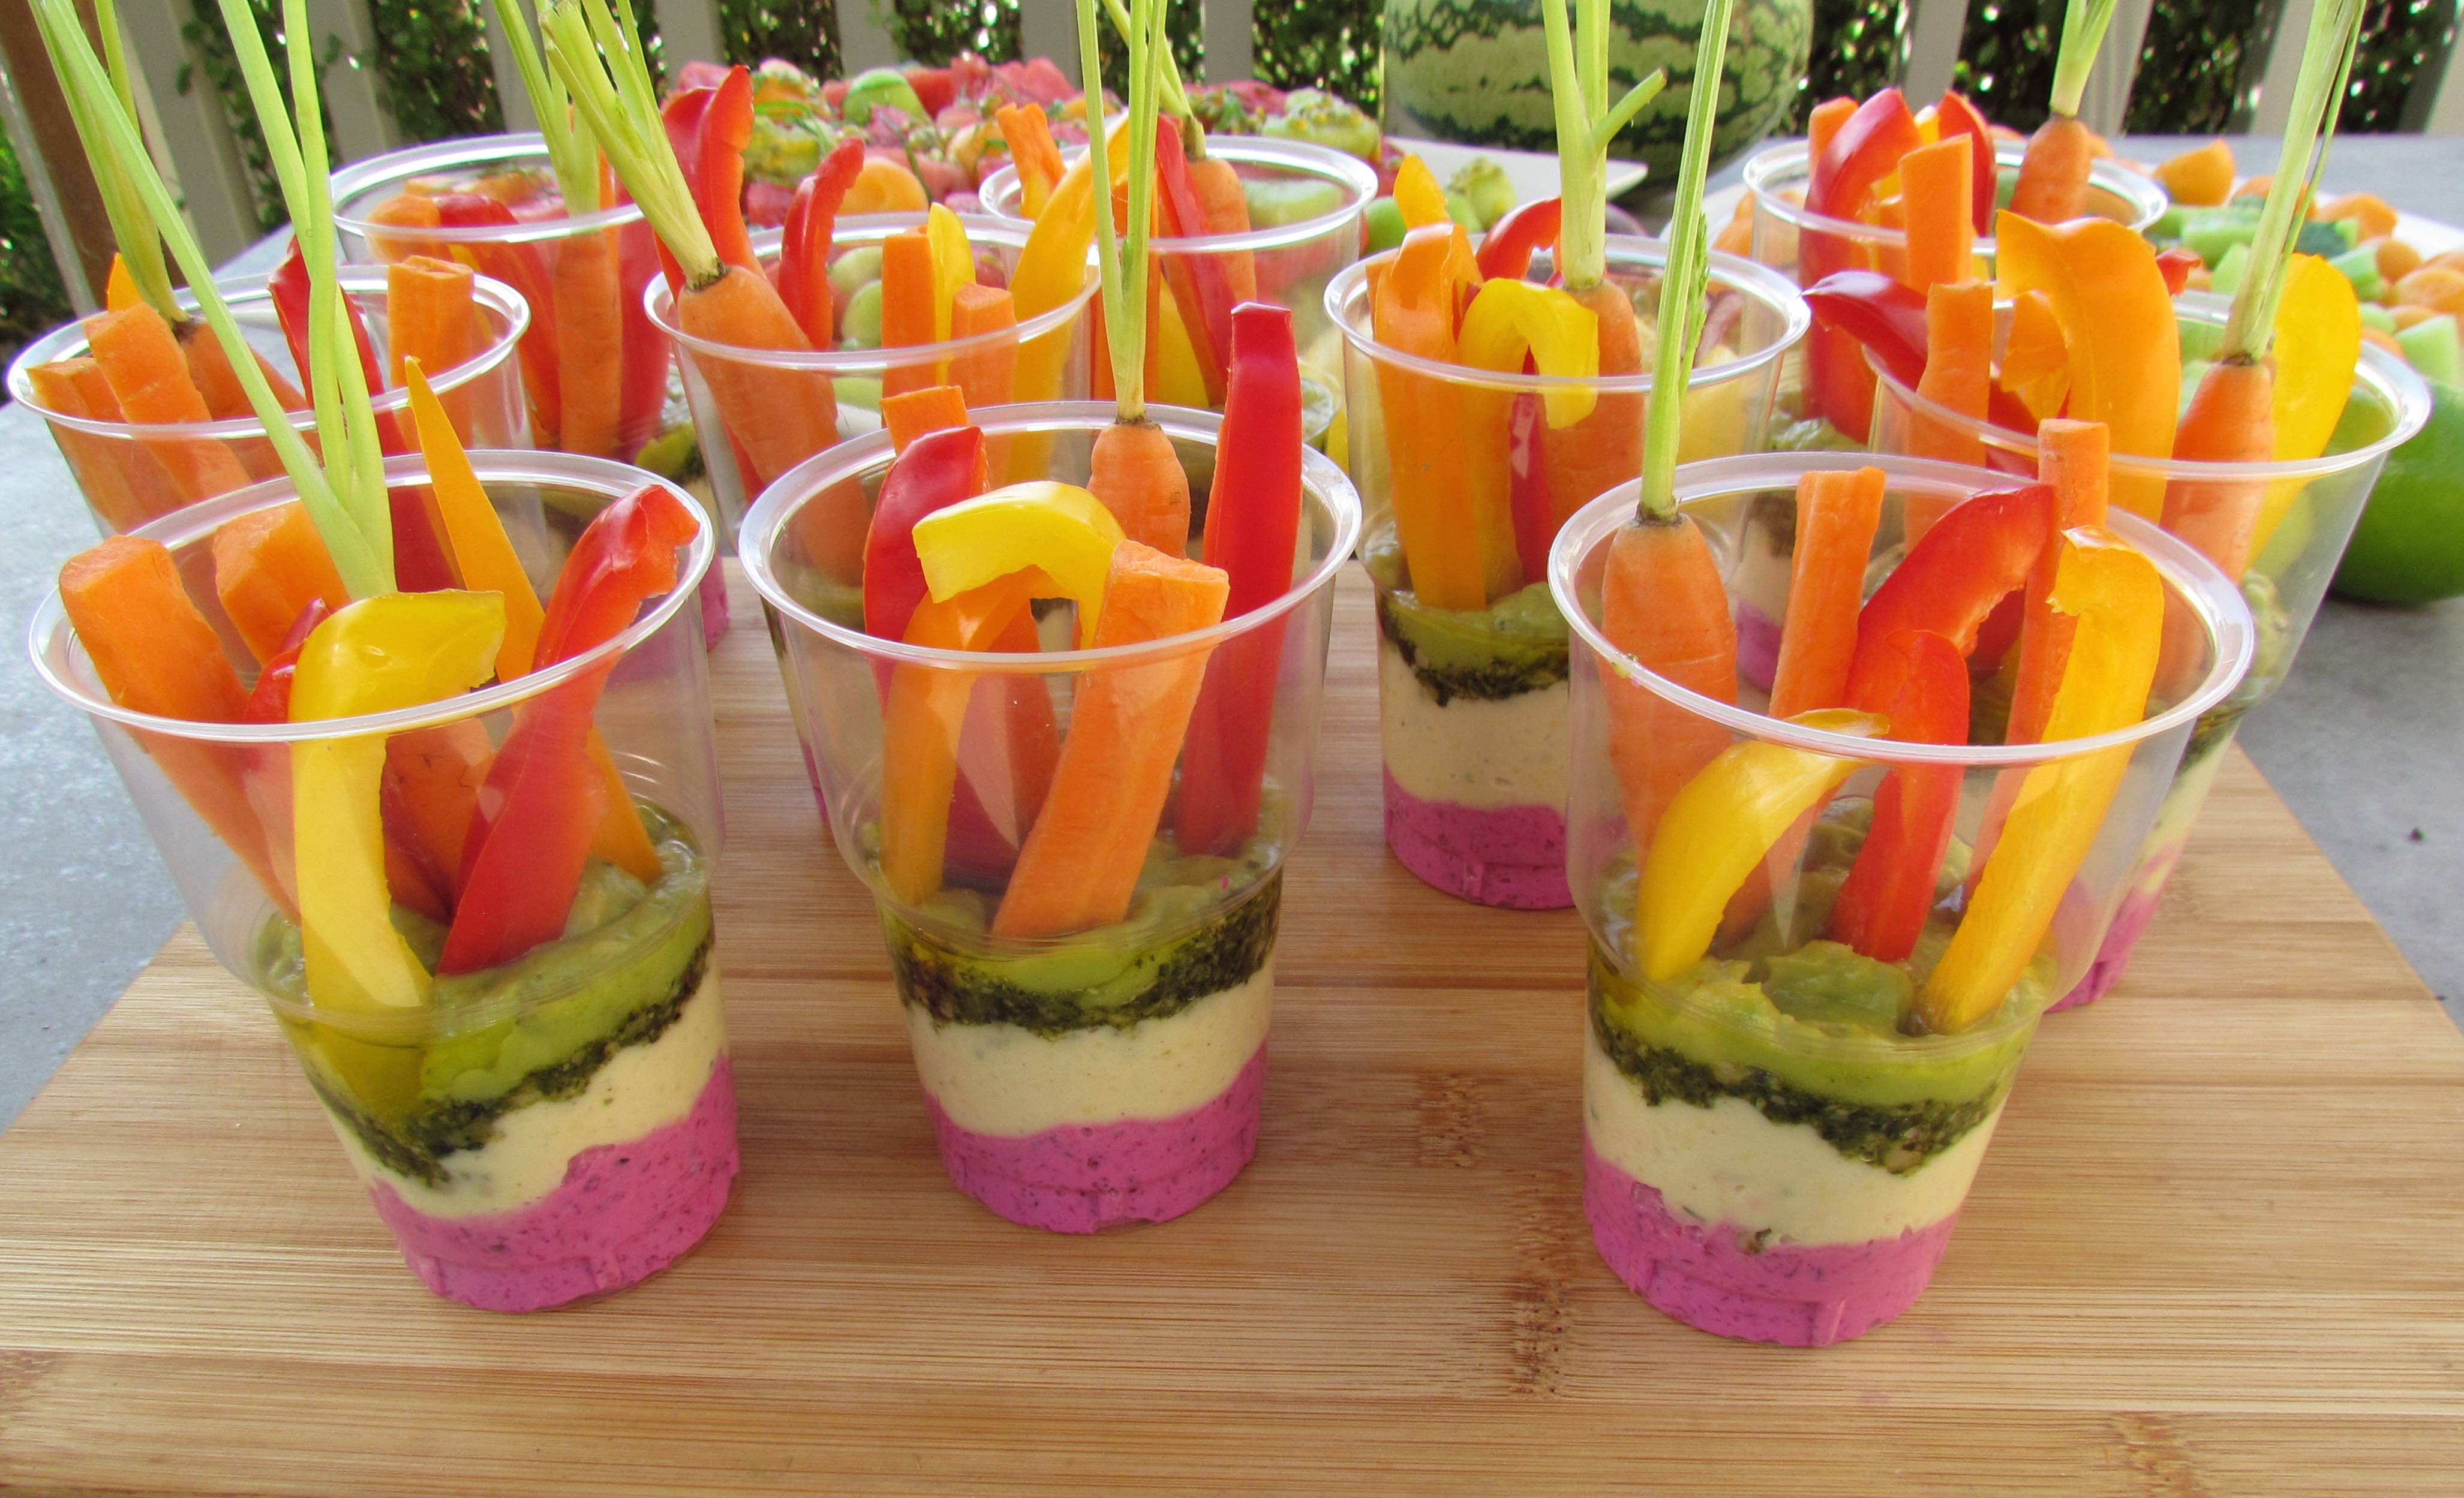 Colourful Vegetable Dip Cups